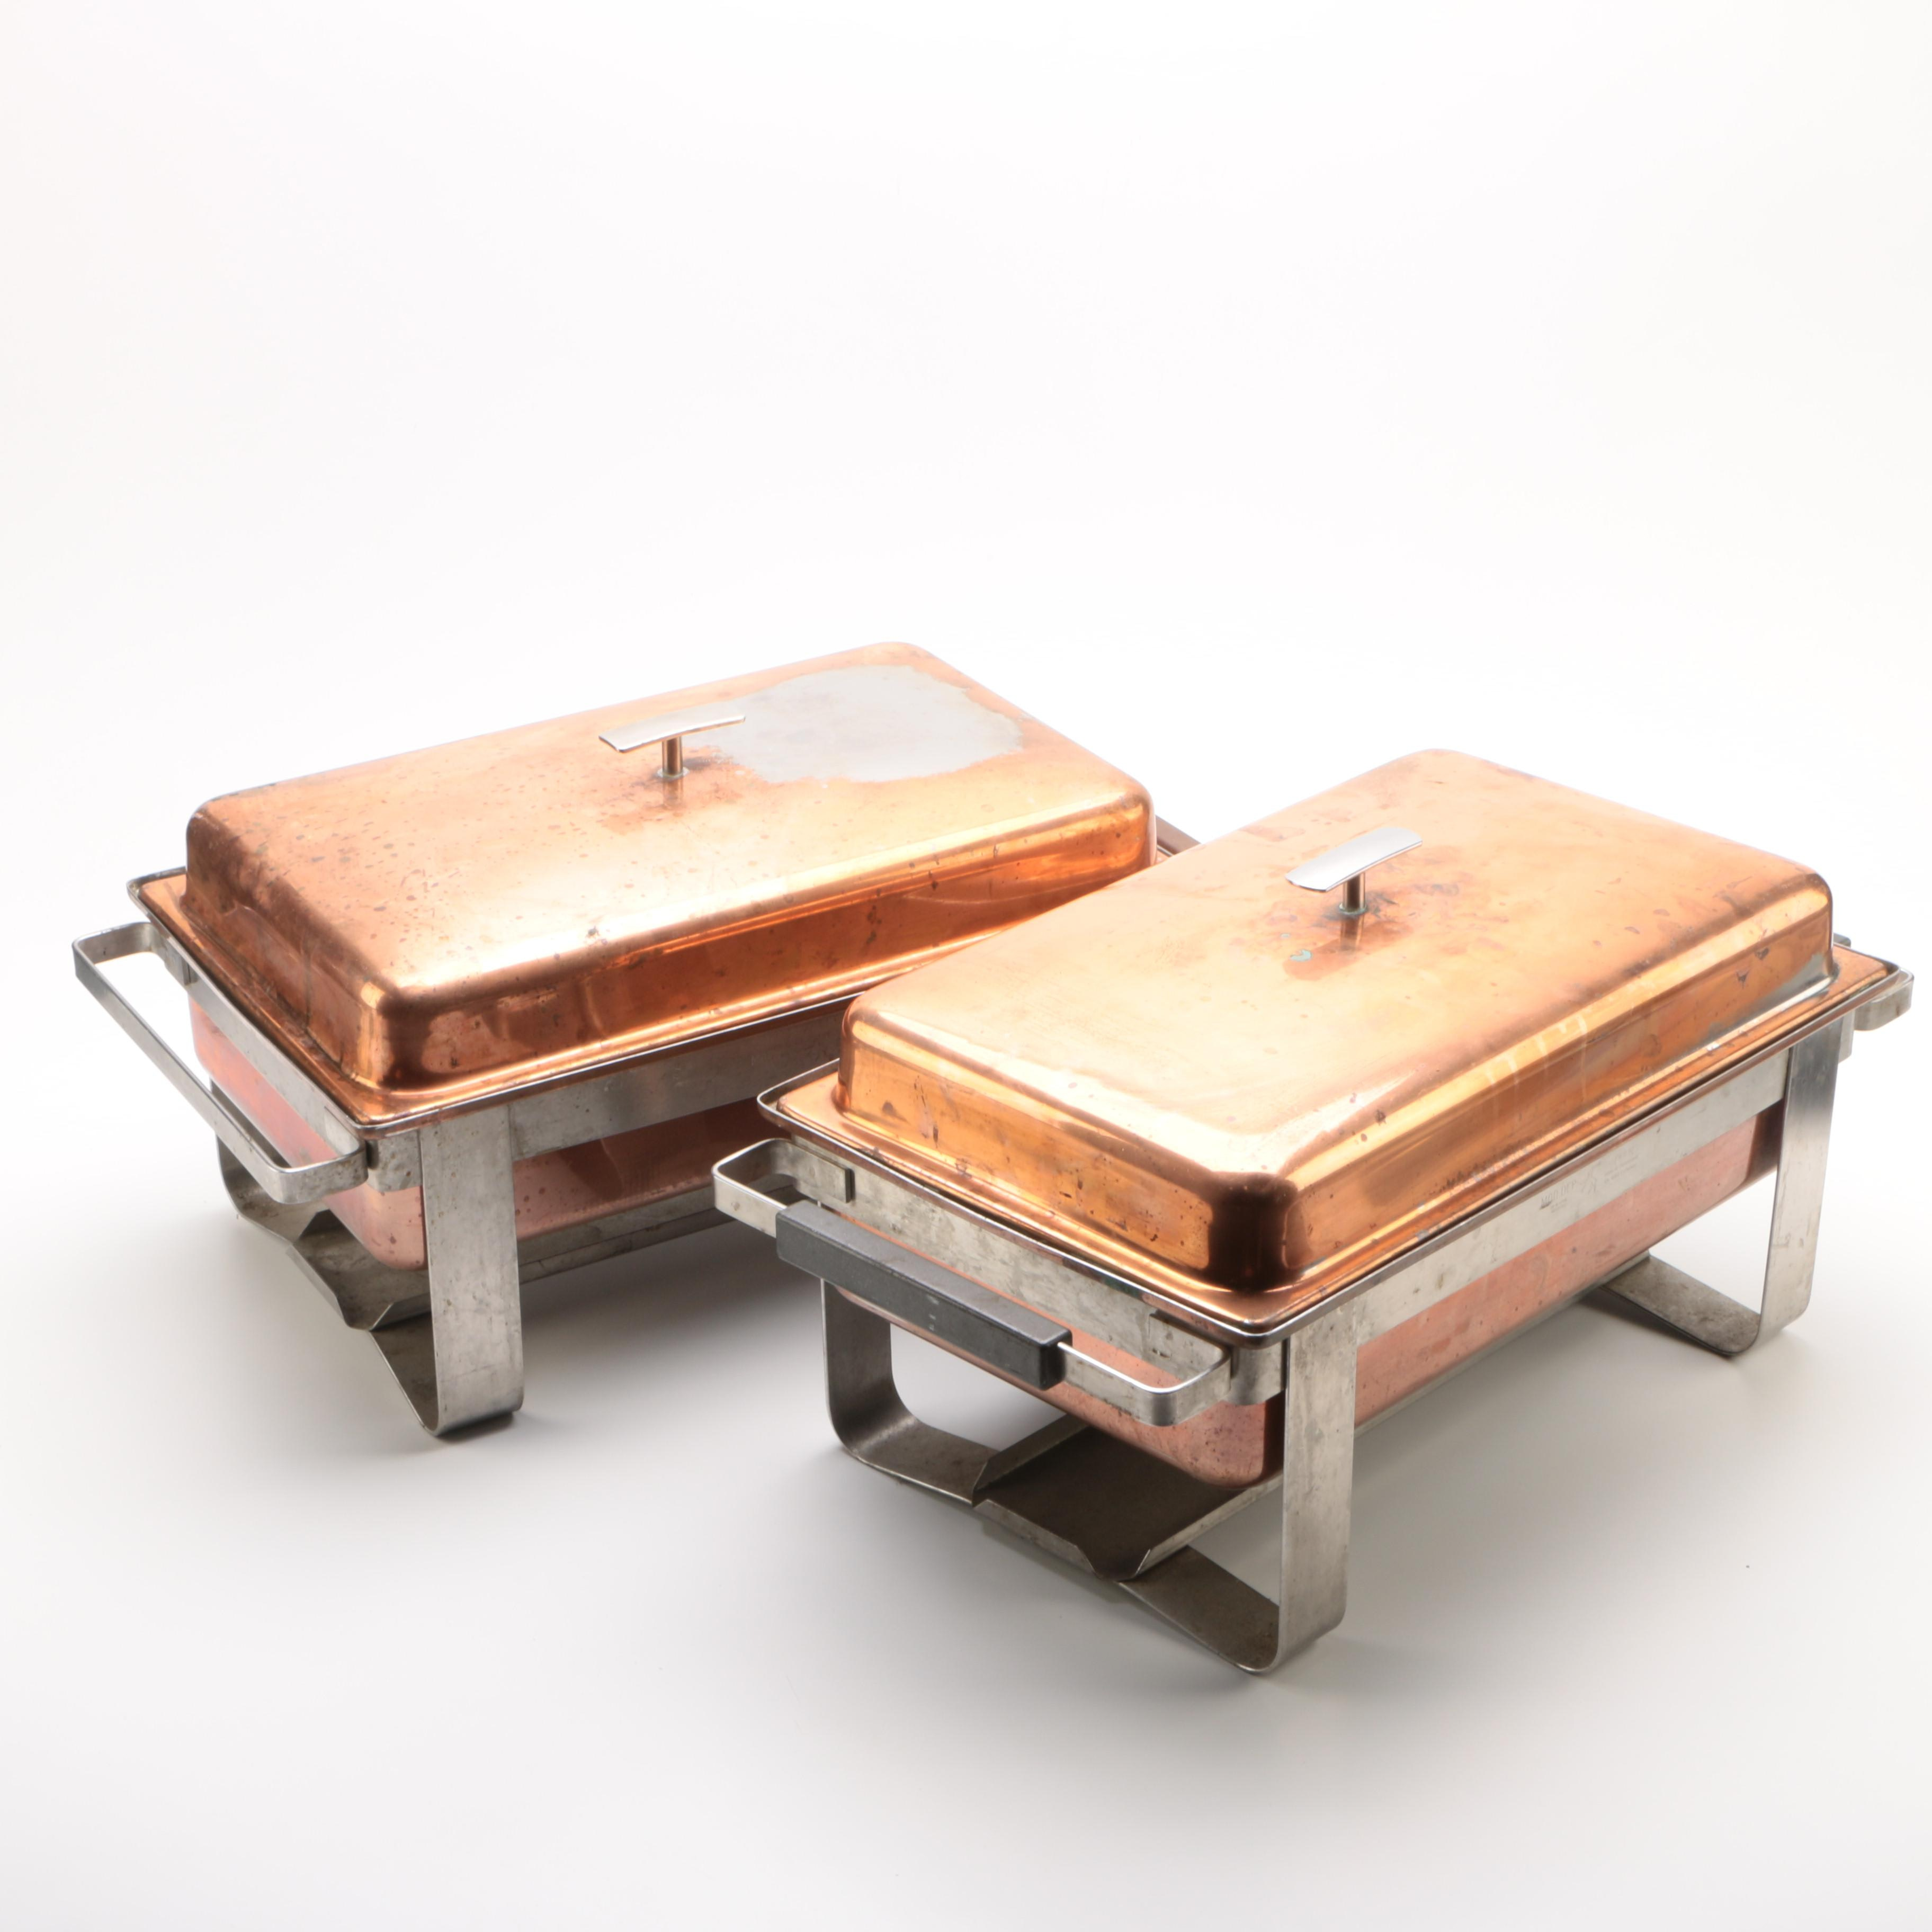 Swiss Spring Inoxydable Steel and Copper Plated Chafing Dishes